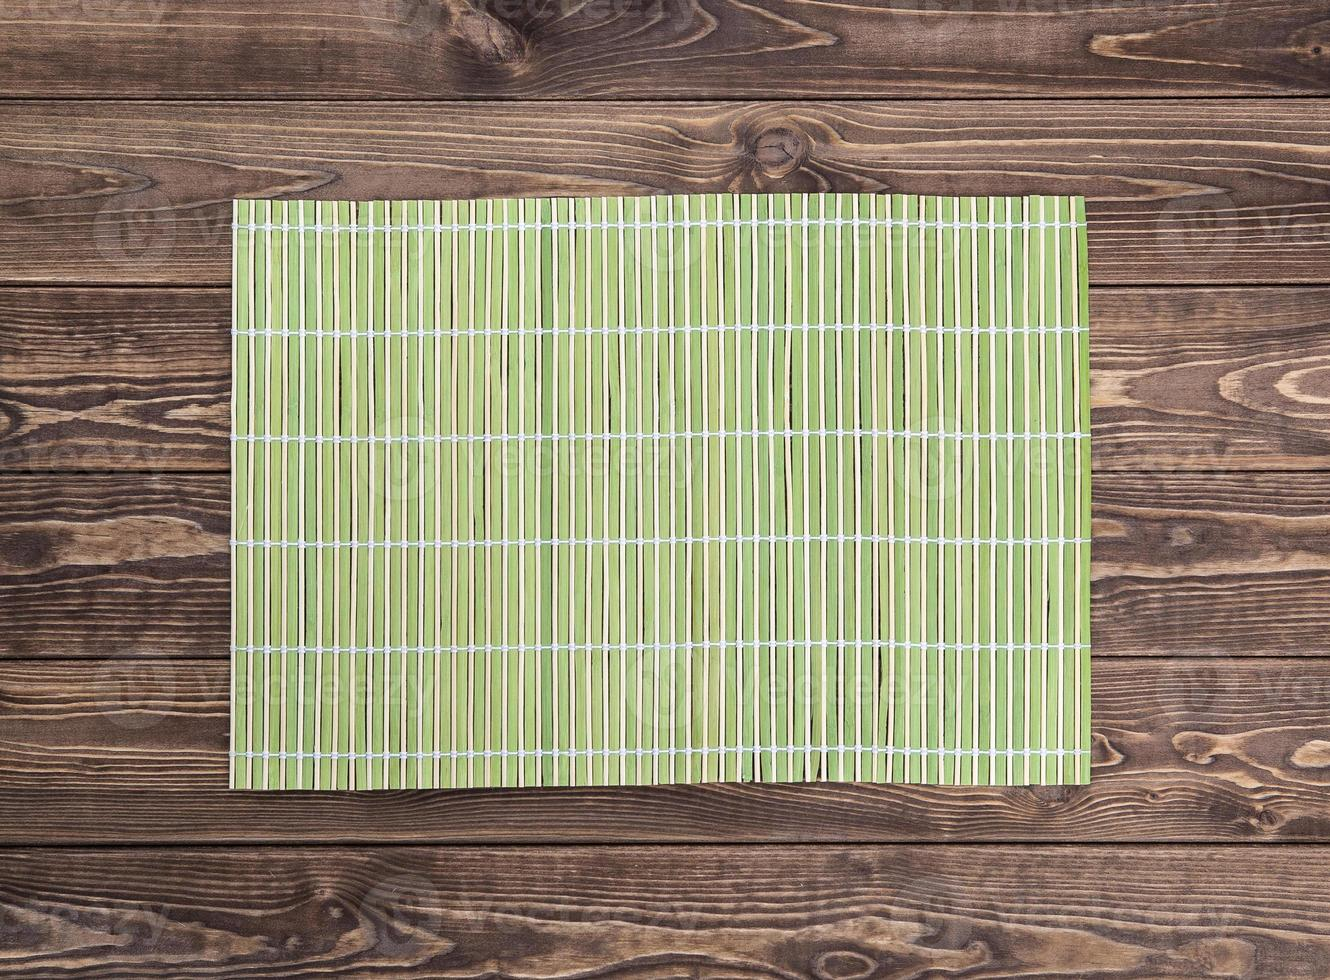 bamboo napkin on wooden table. top view photo